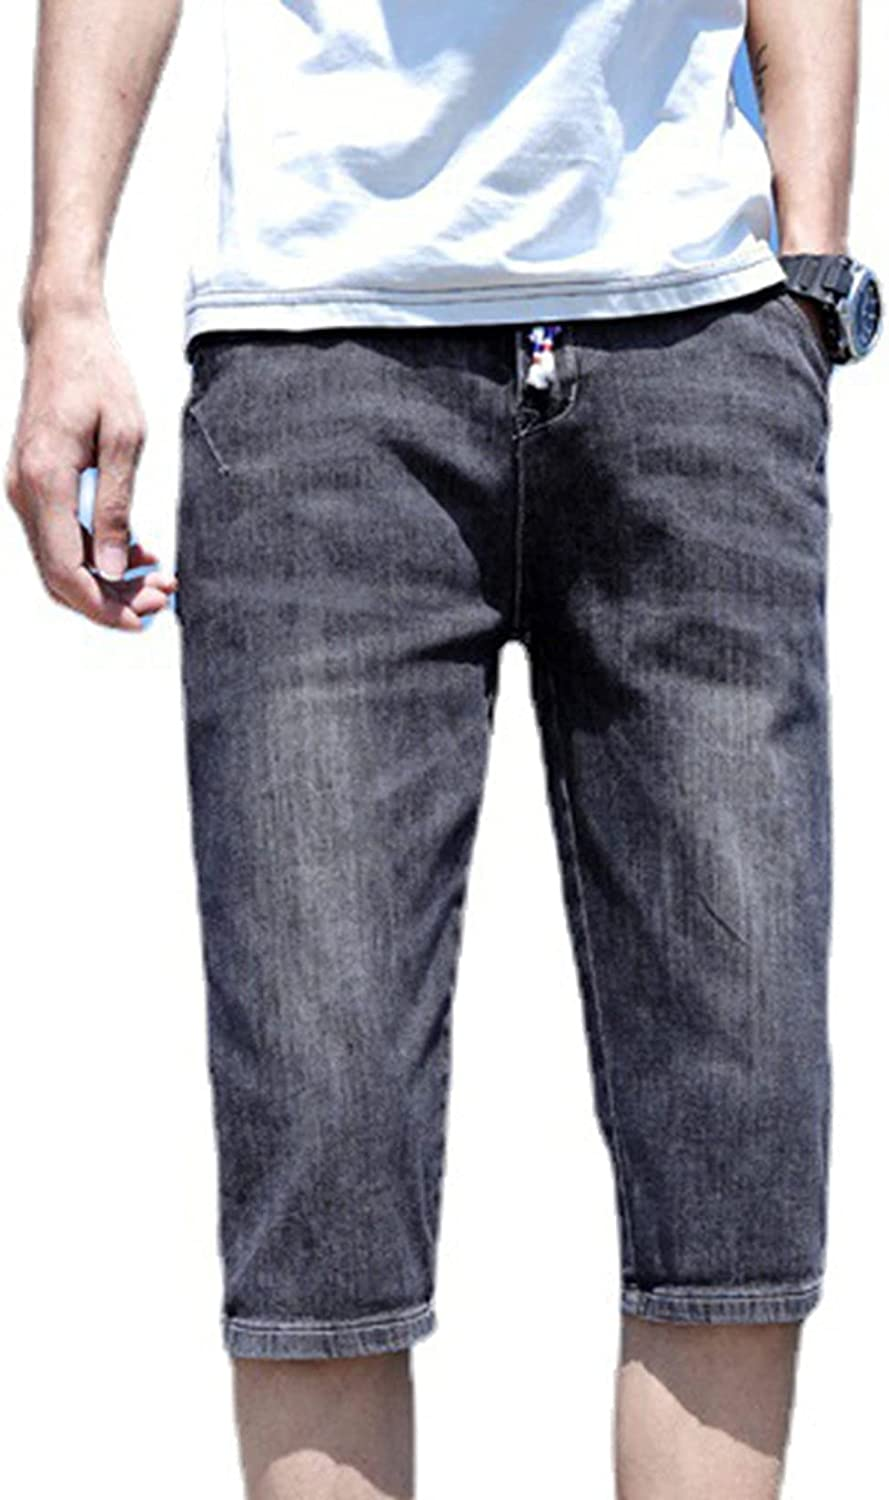 Denim Shorts for Men's Summer Thin Straight Skin-Friendly Pants Slim Stretch Cropped Trousers Not Easy to Fade Jeans